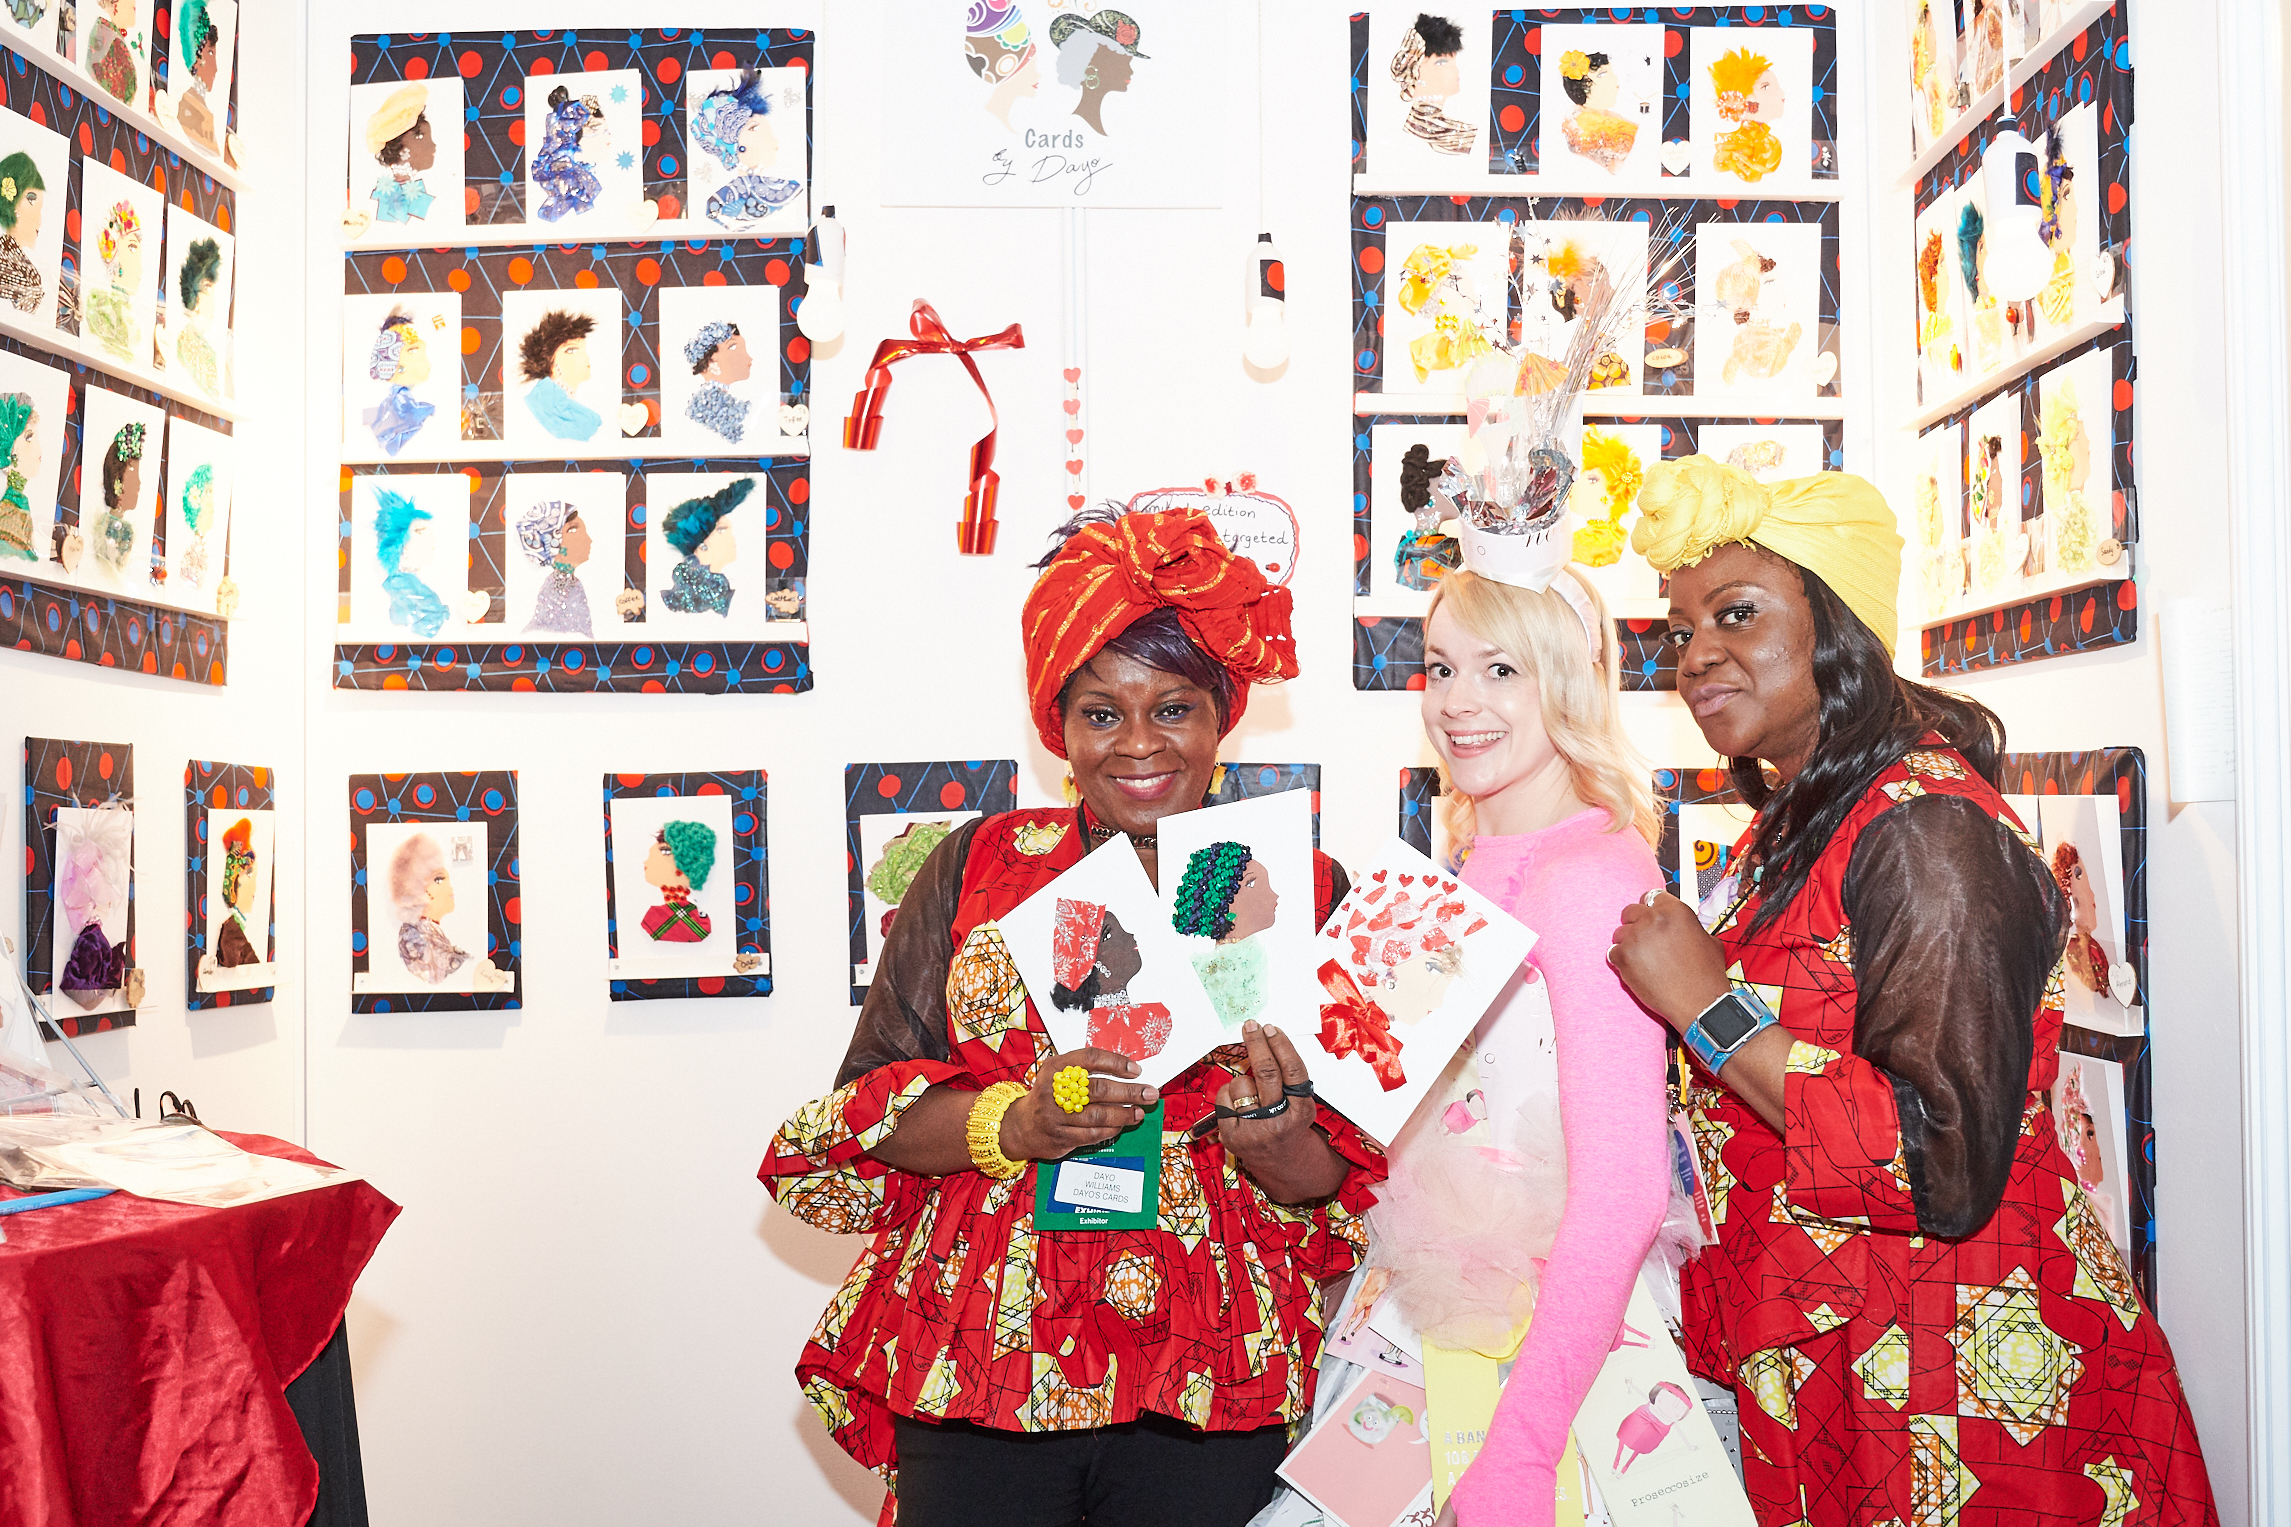 Above: Dayo Williams (left), founder of Dayo's Cards was one of the exhibitors that celebrated diversity on the card front.